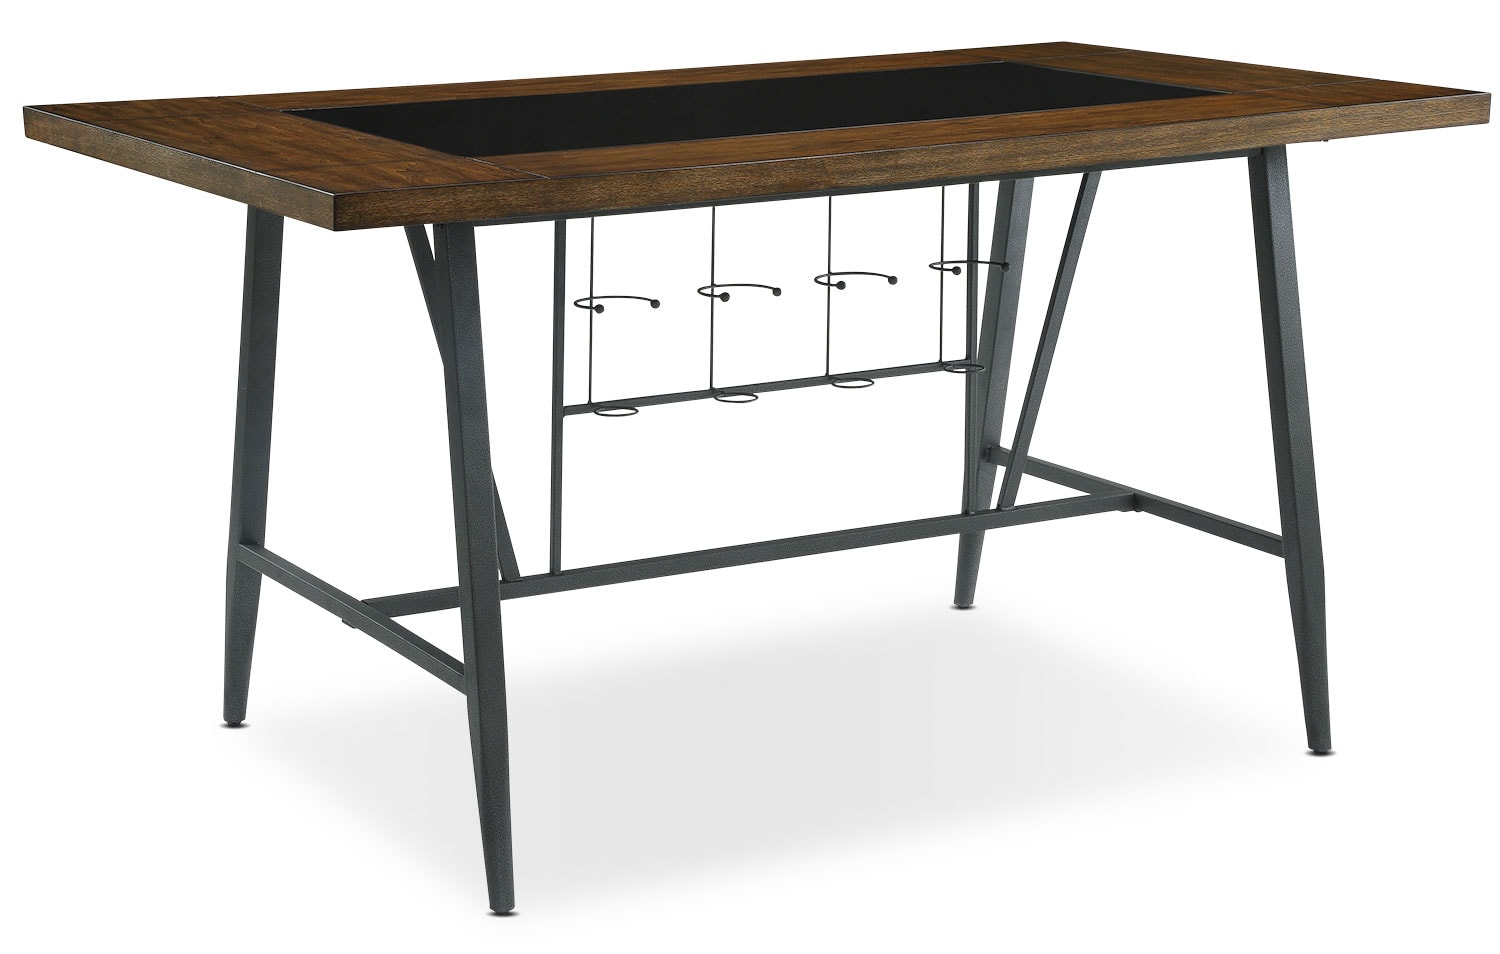 Dining Room Furniture - Nolita Counter-Height Dining Table